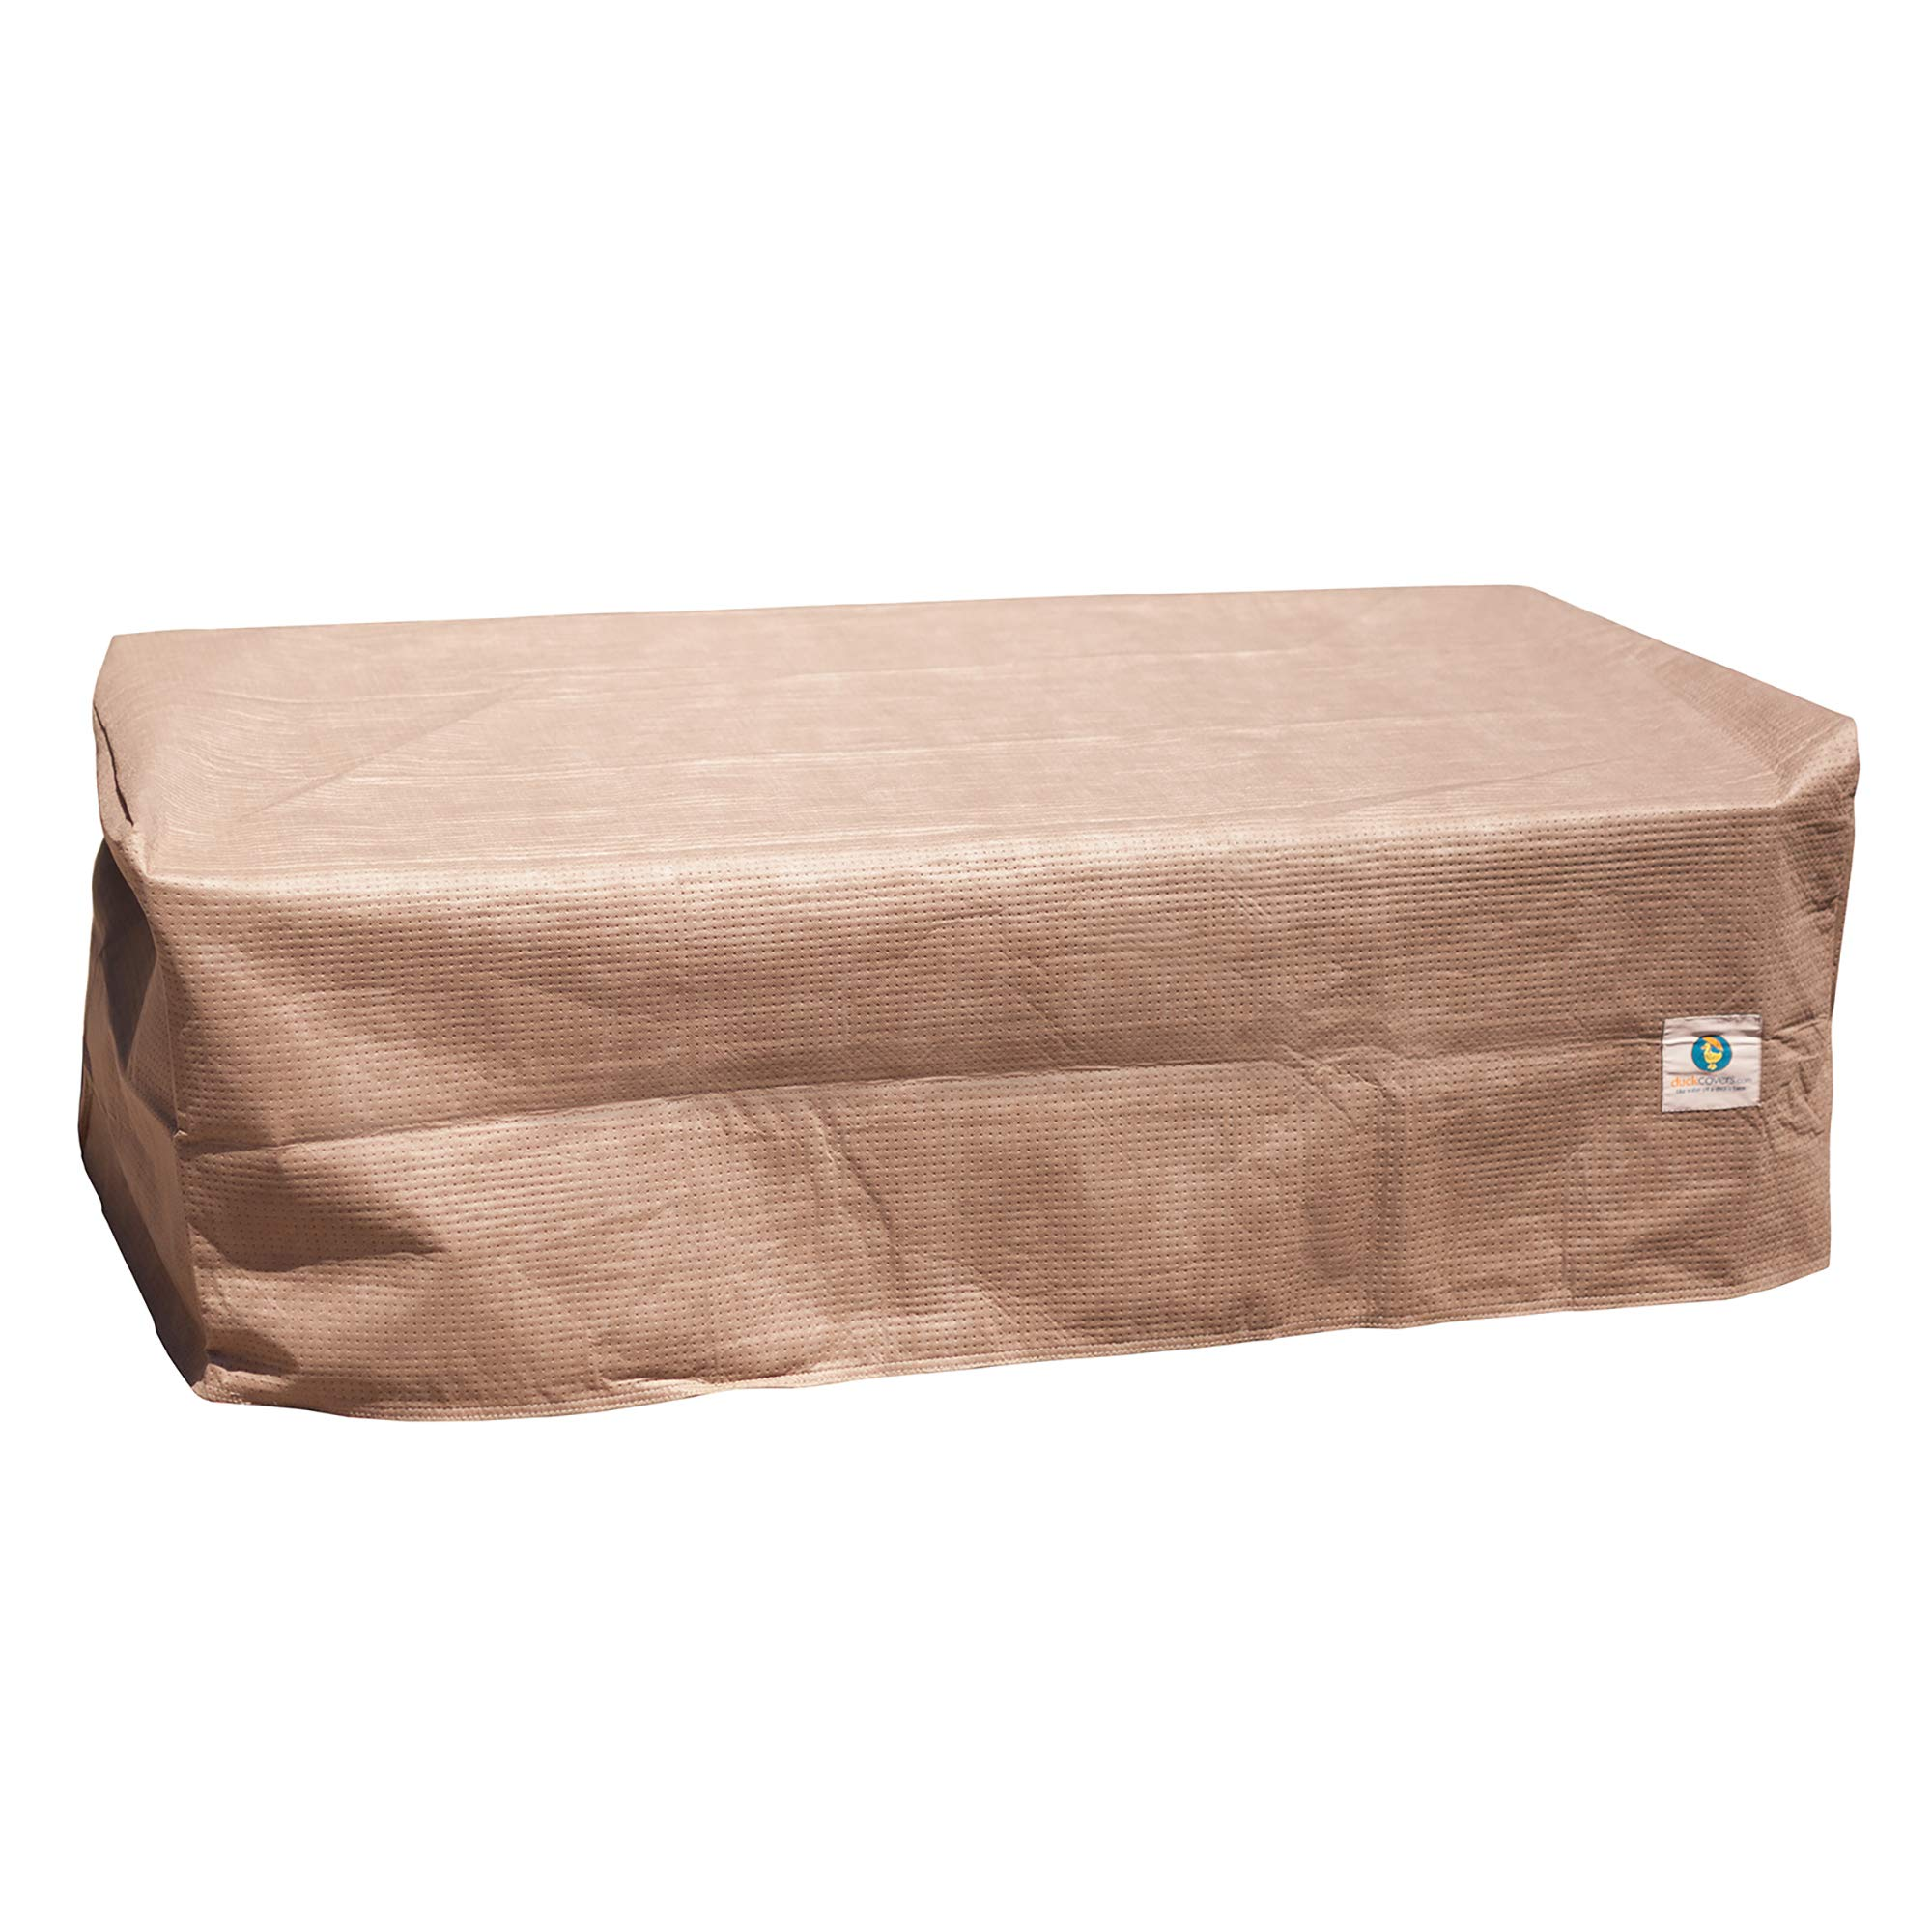 Duck Covers Elite Rectangular Patio Ottoman or Side Table Cover, 52'' L x 30'' W x 18'' H